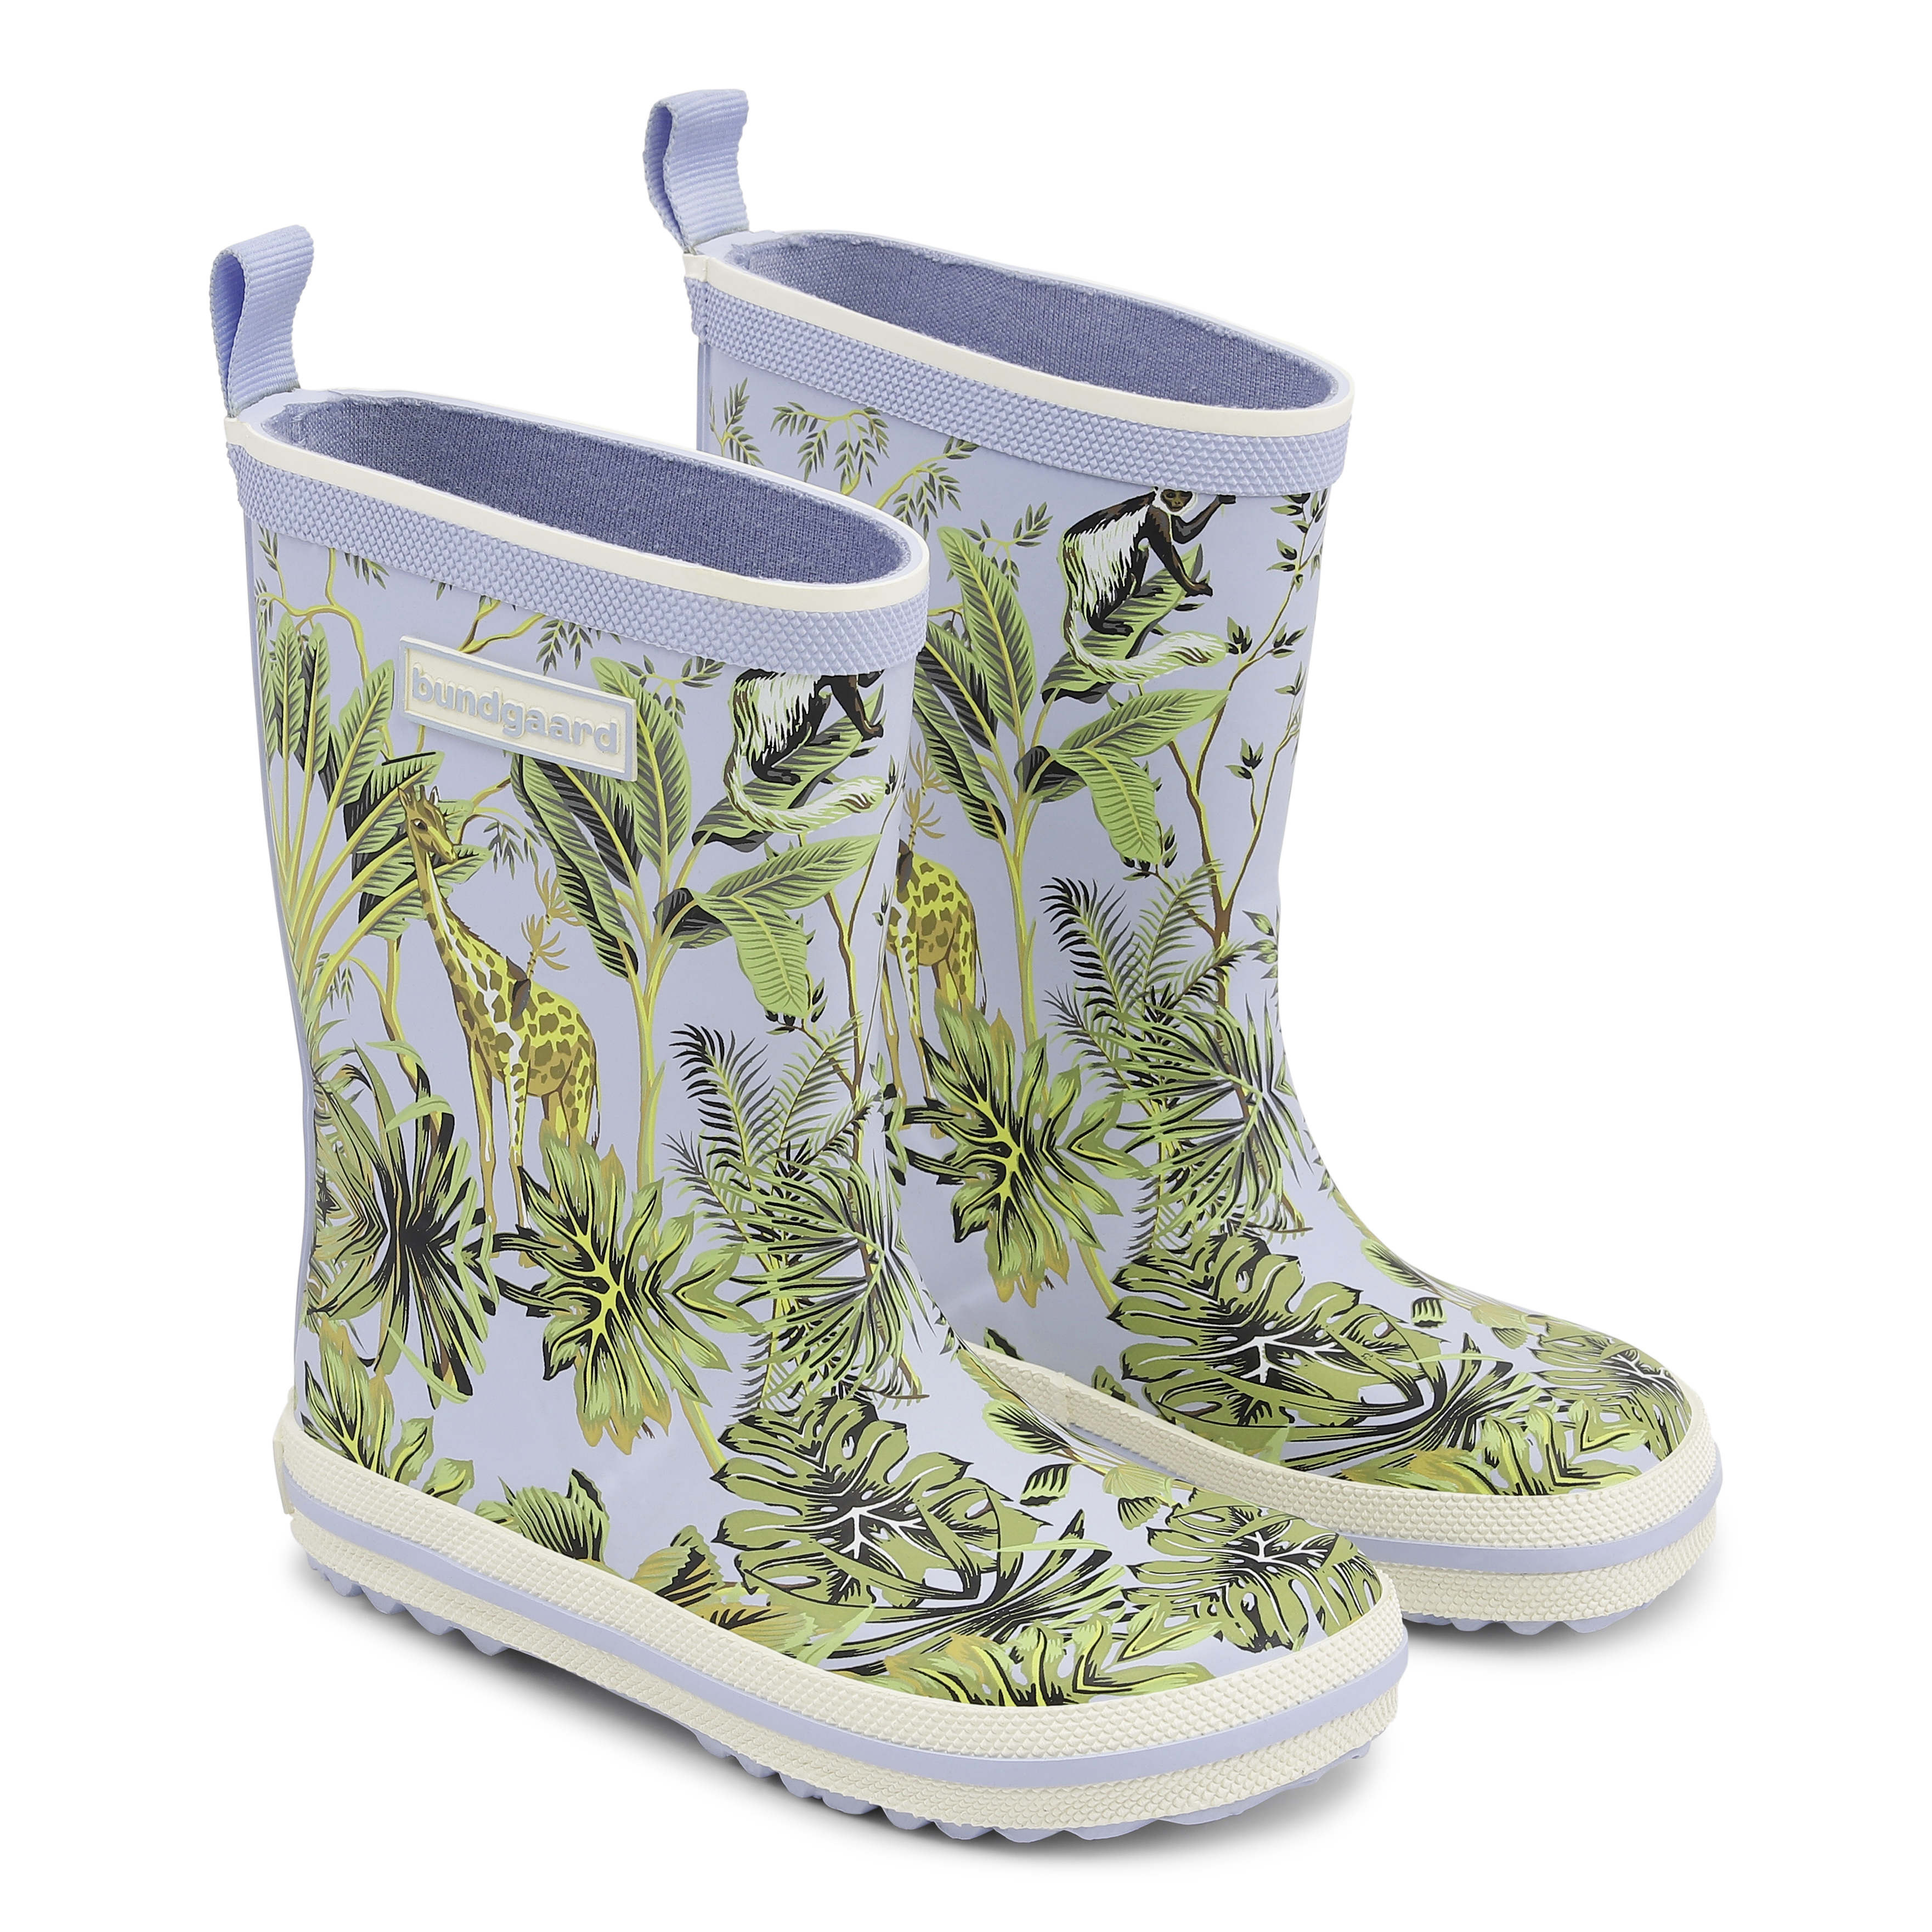 Bundgaard Classic Rubber Boots Tropical Forest